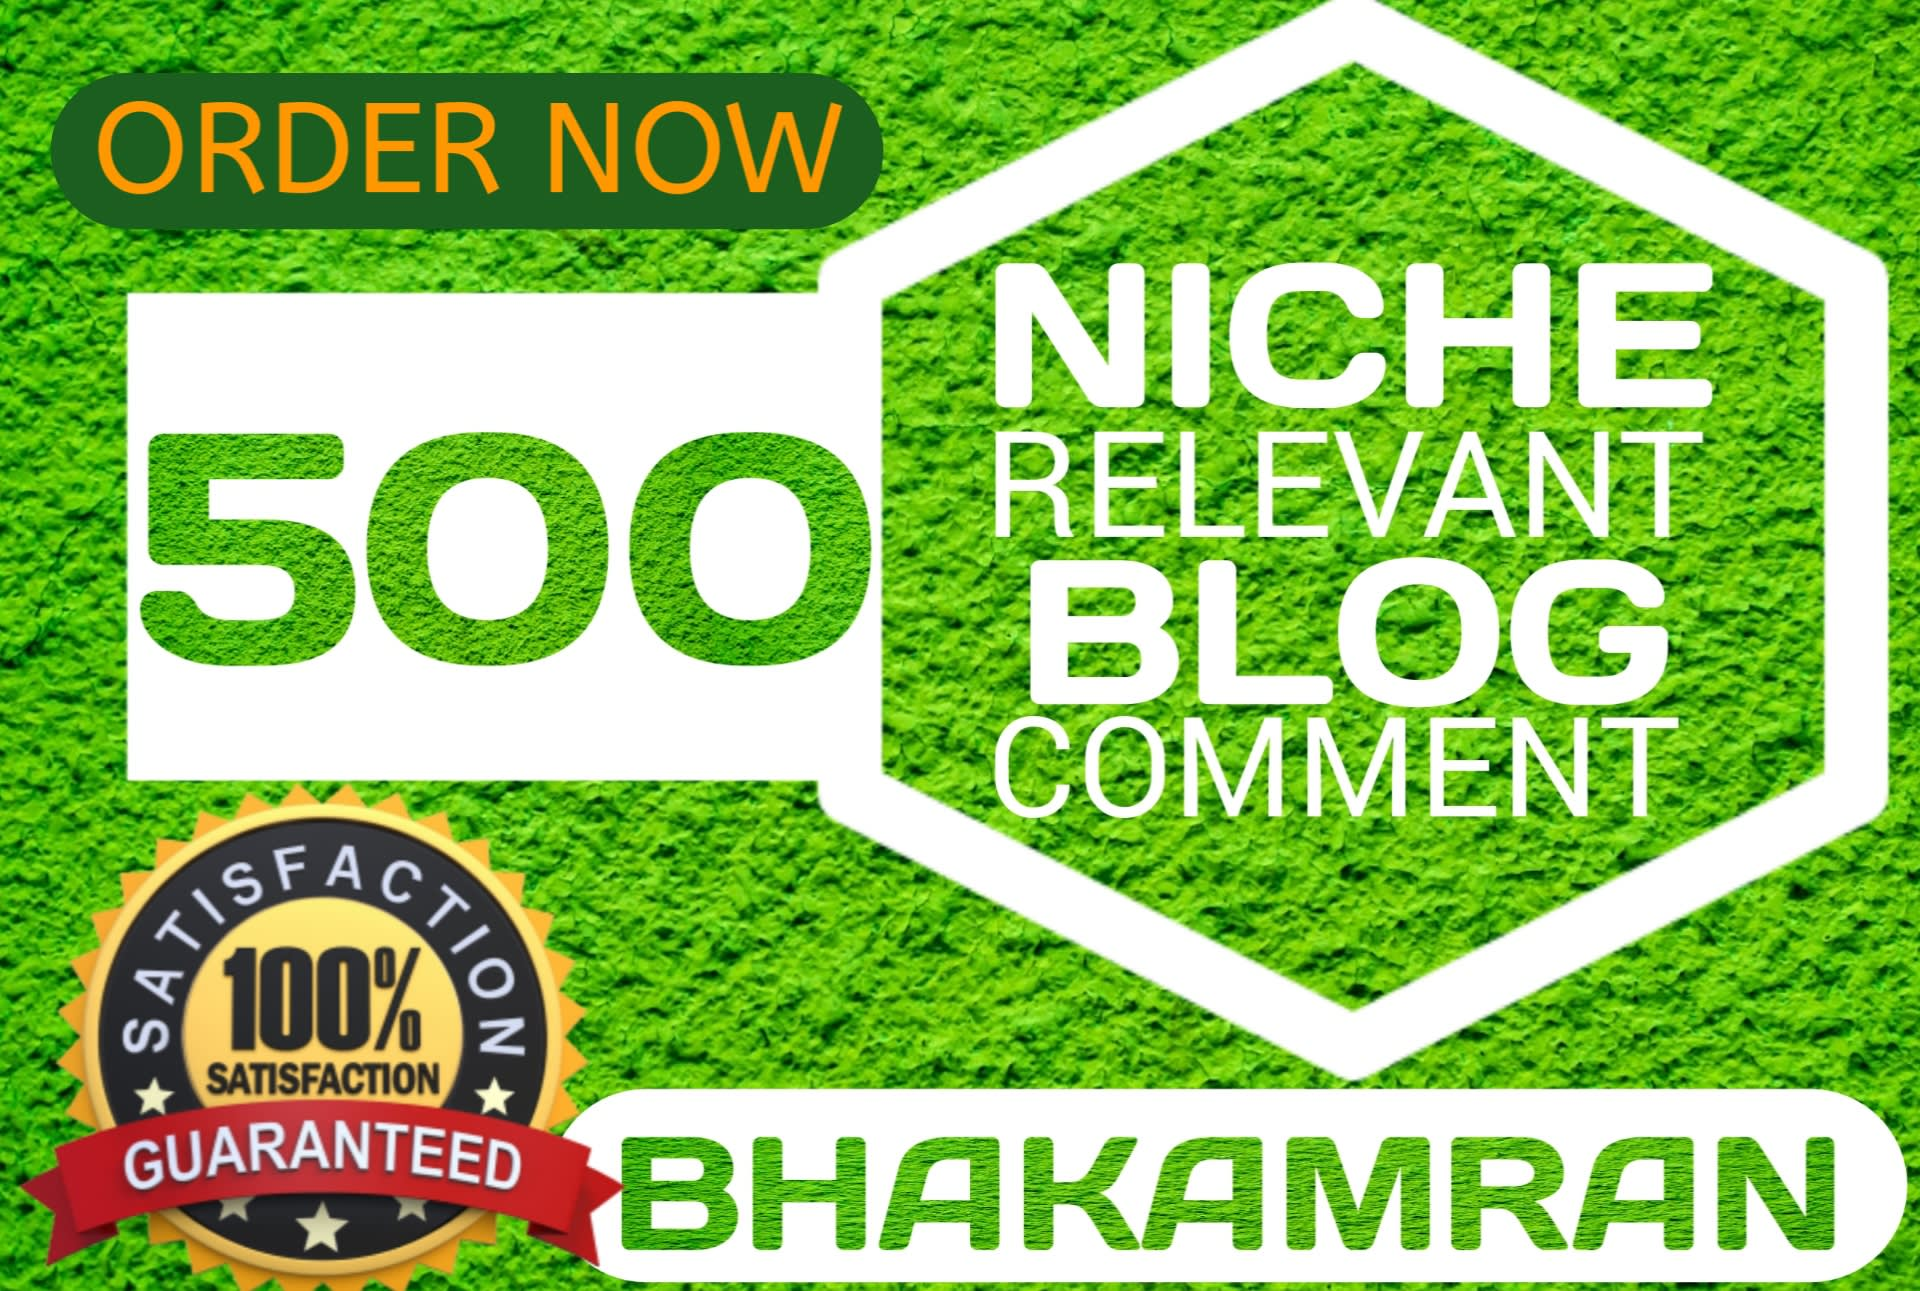 I will create 500 niche relevant blog comments seo backlinks